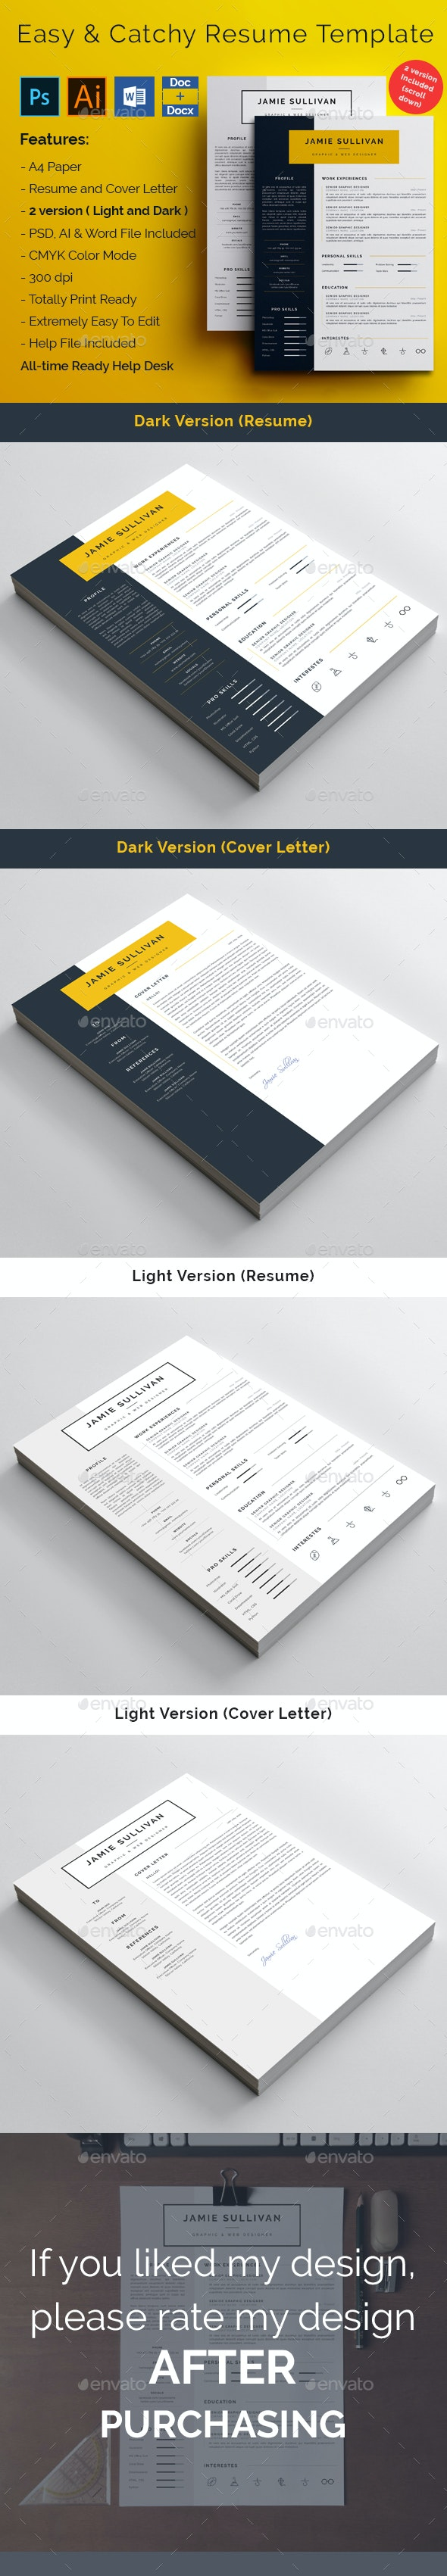 Easy and Catchy Resume Template - Resumes Stationery